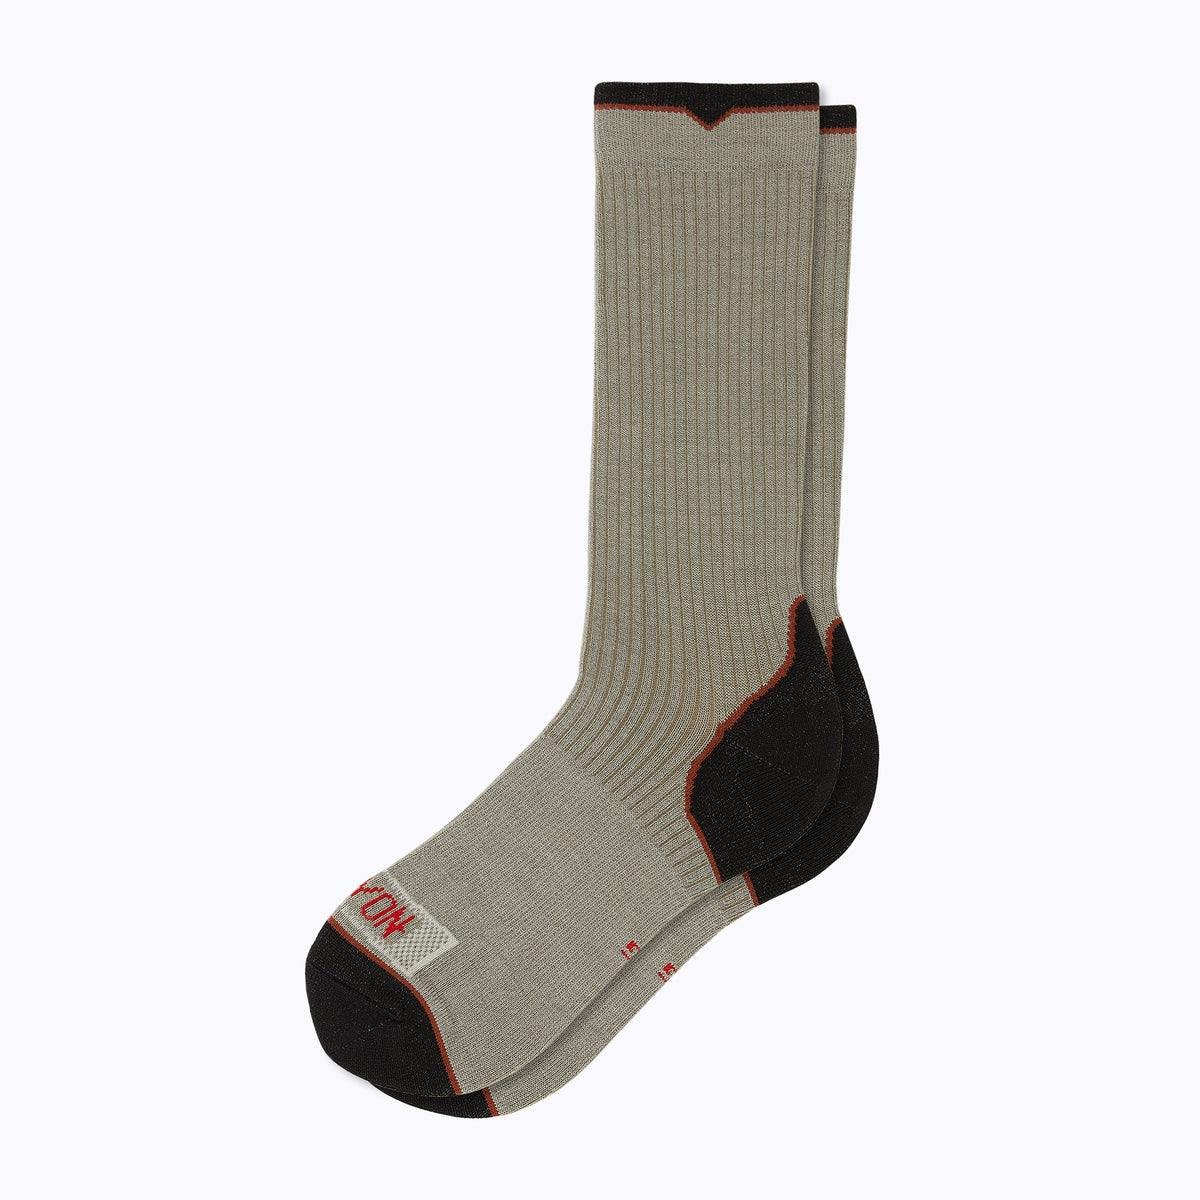 Essential Men's Crew Socks - Sand by Canyon Socks